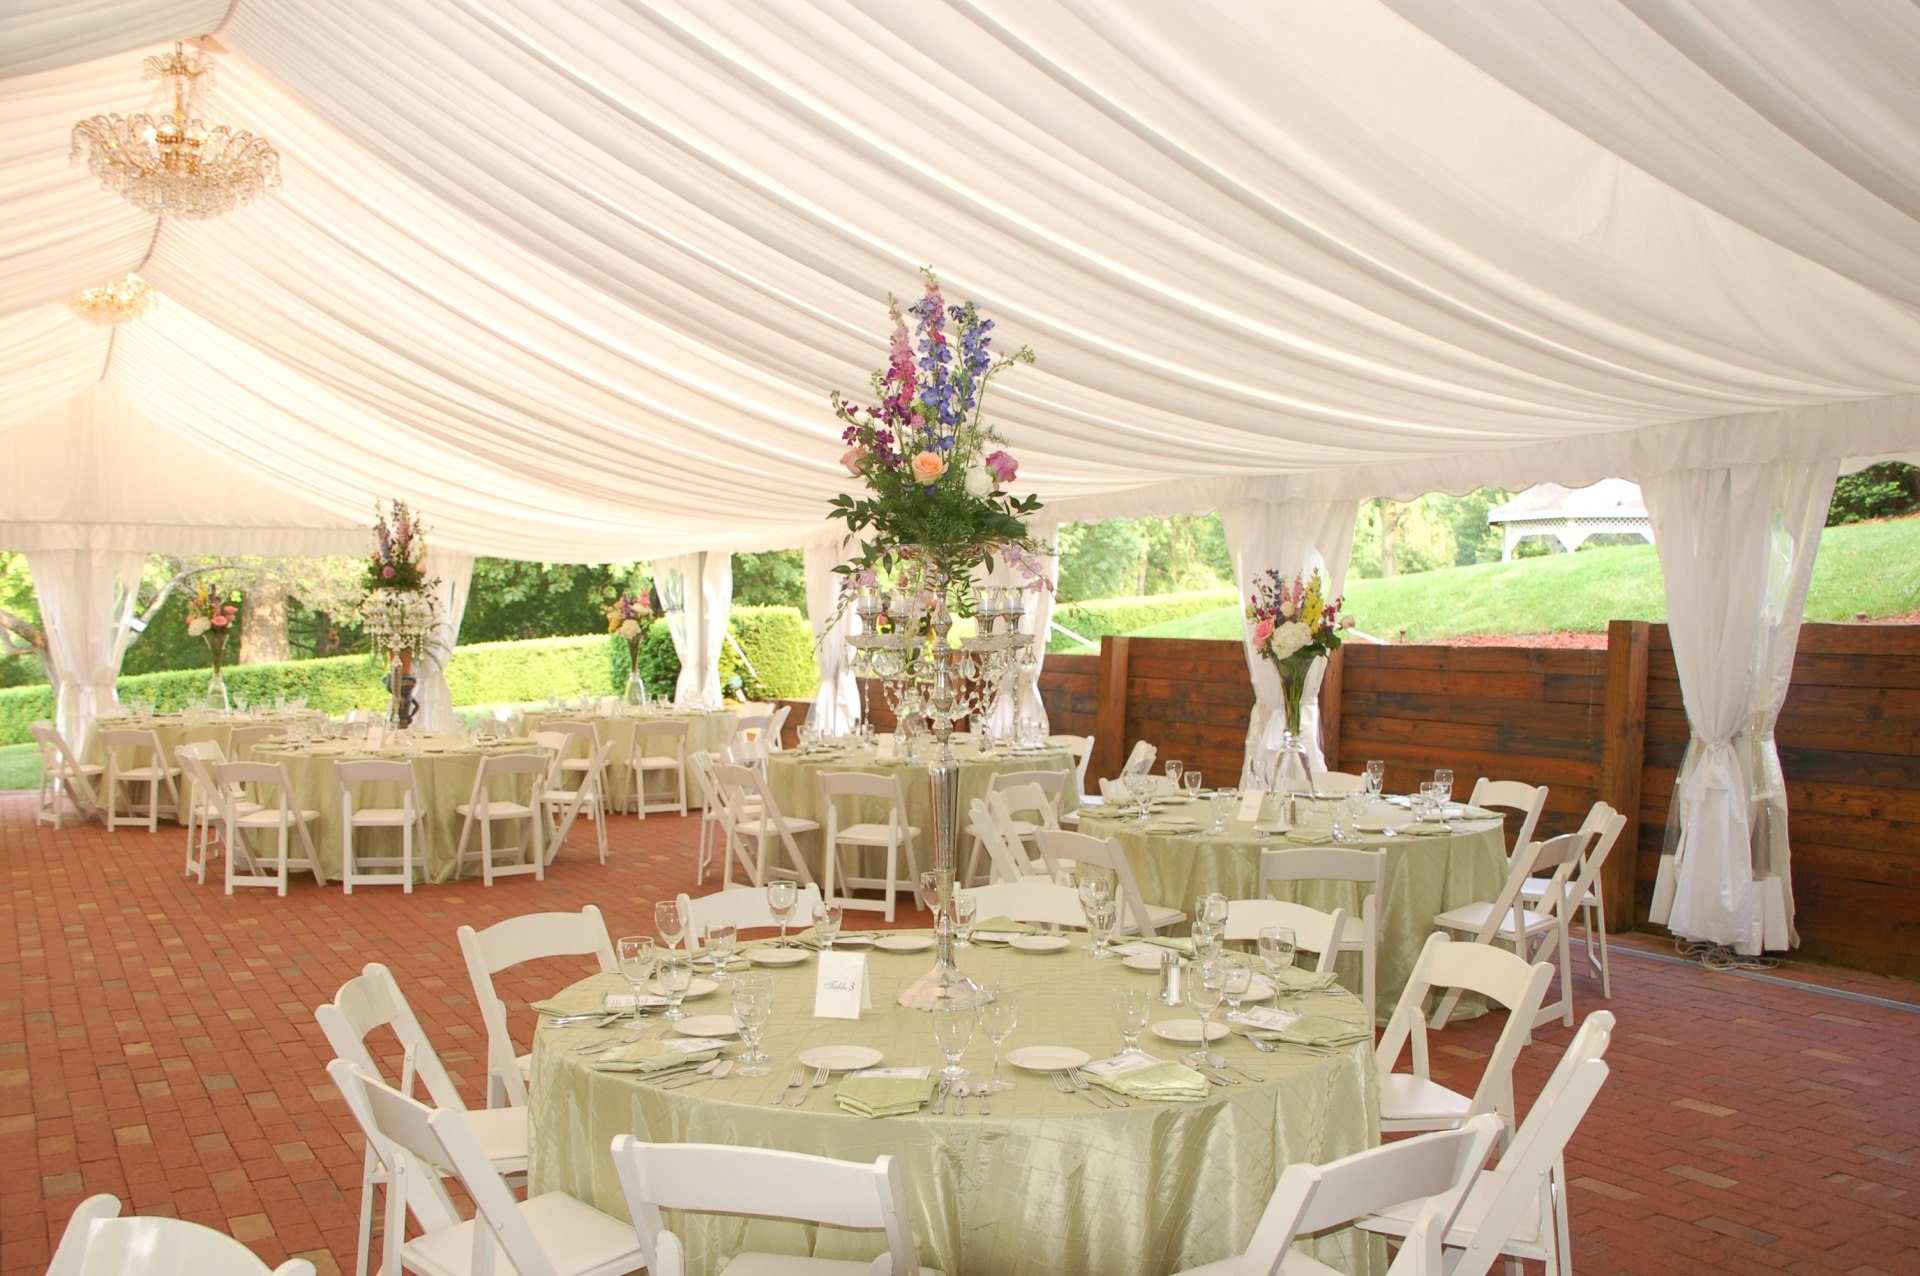 Tara A Country Inn Weddings and Events (1)